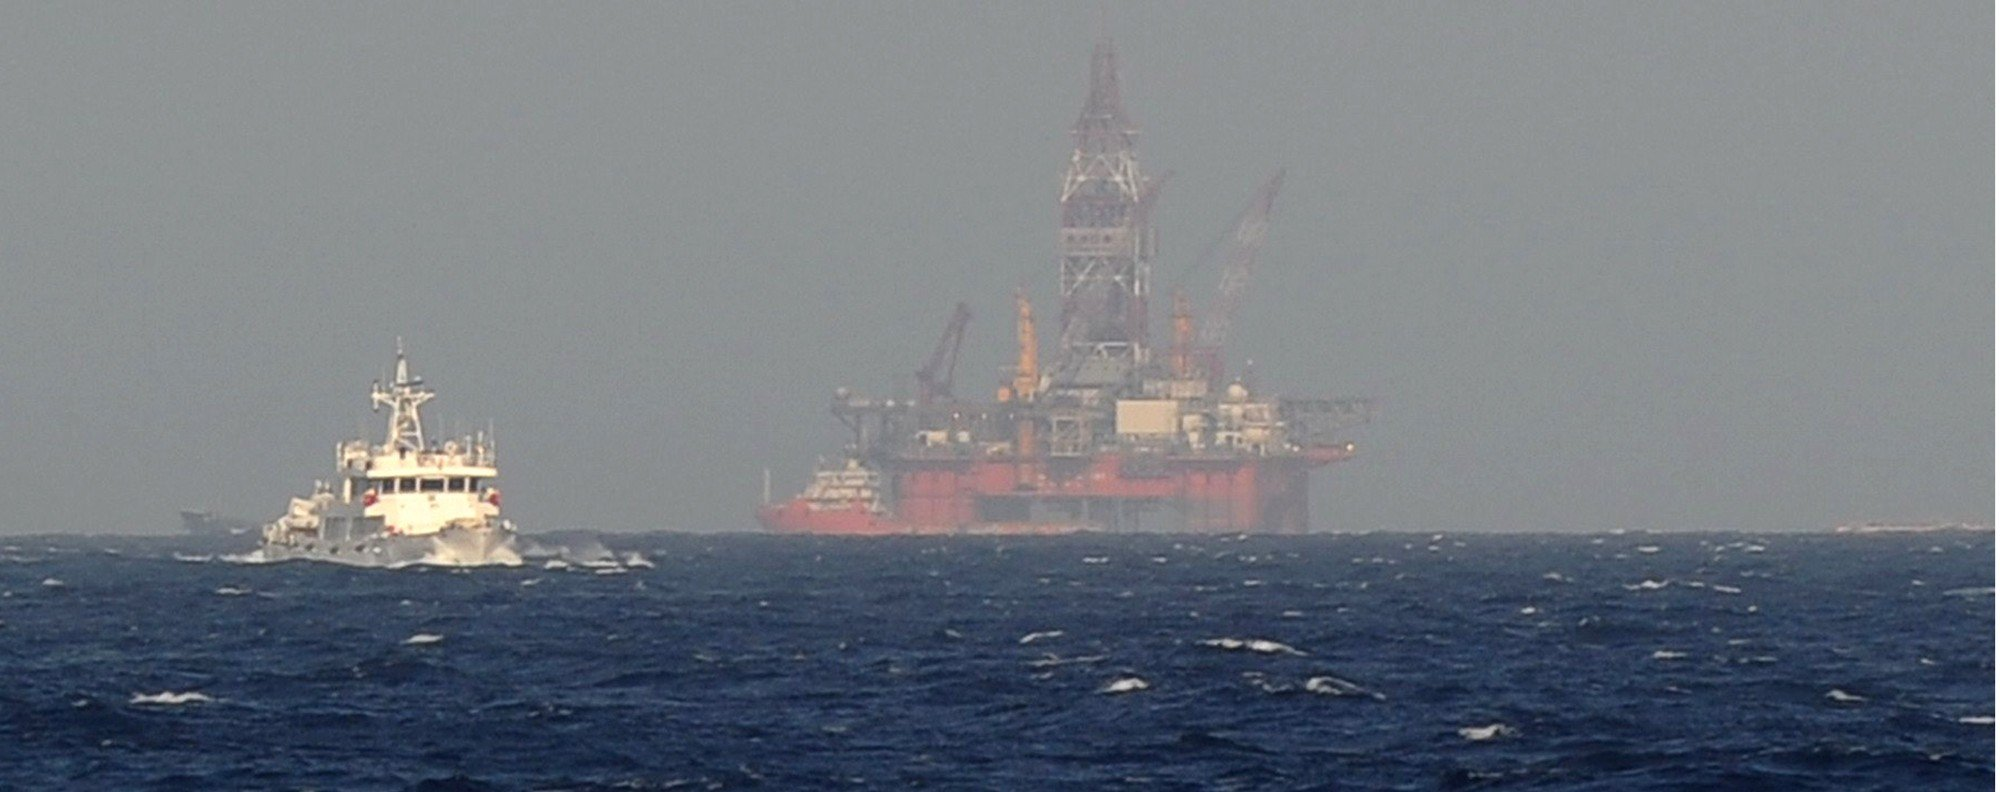 A Chinese oil rig in the South China Sea. Photo: AFP